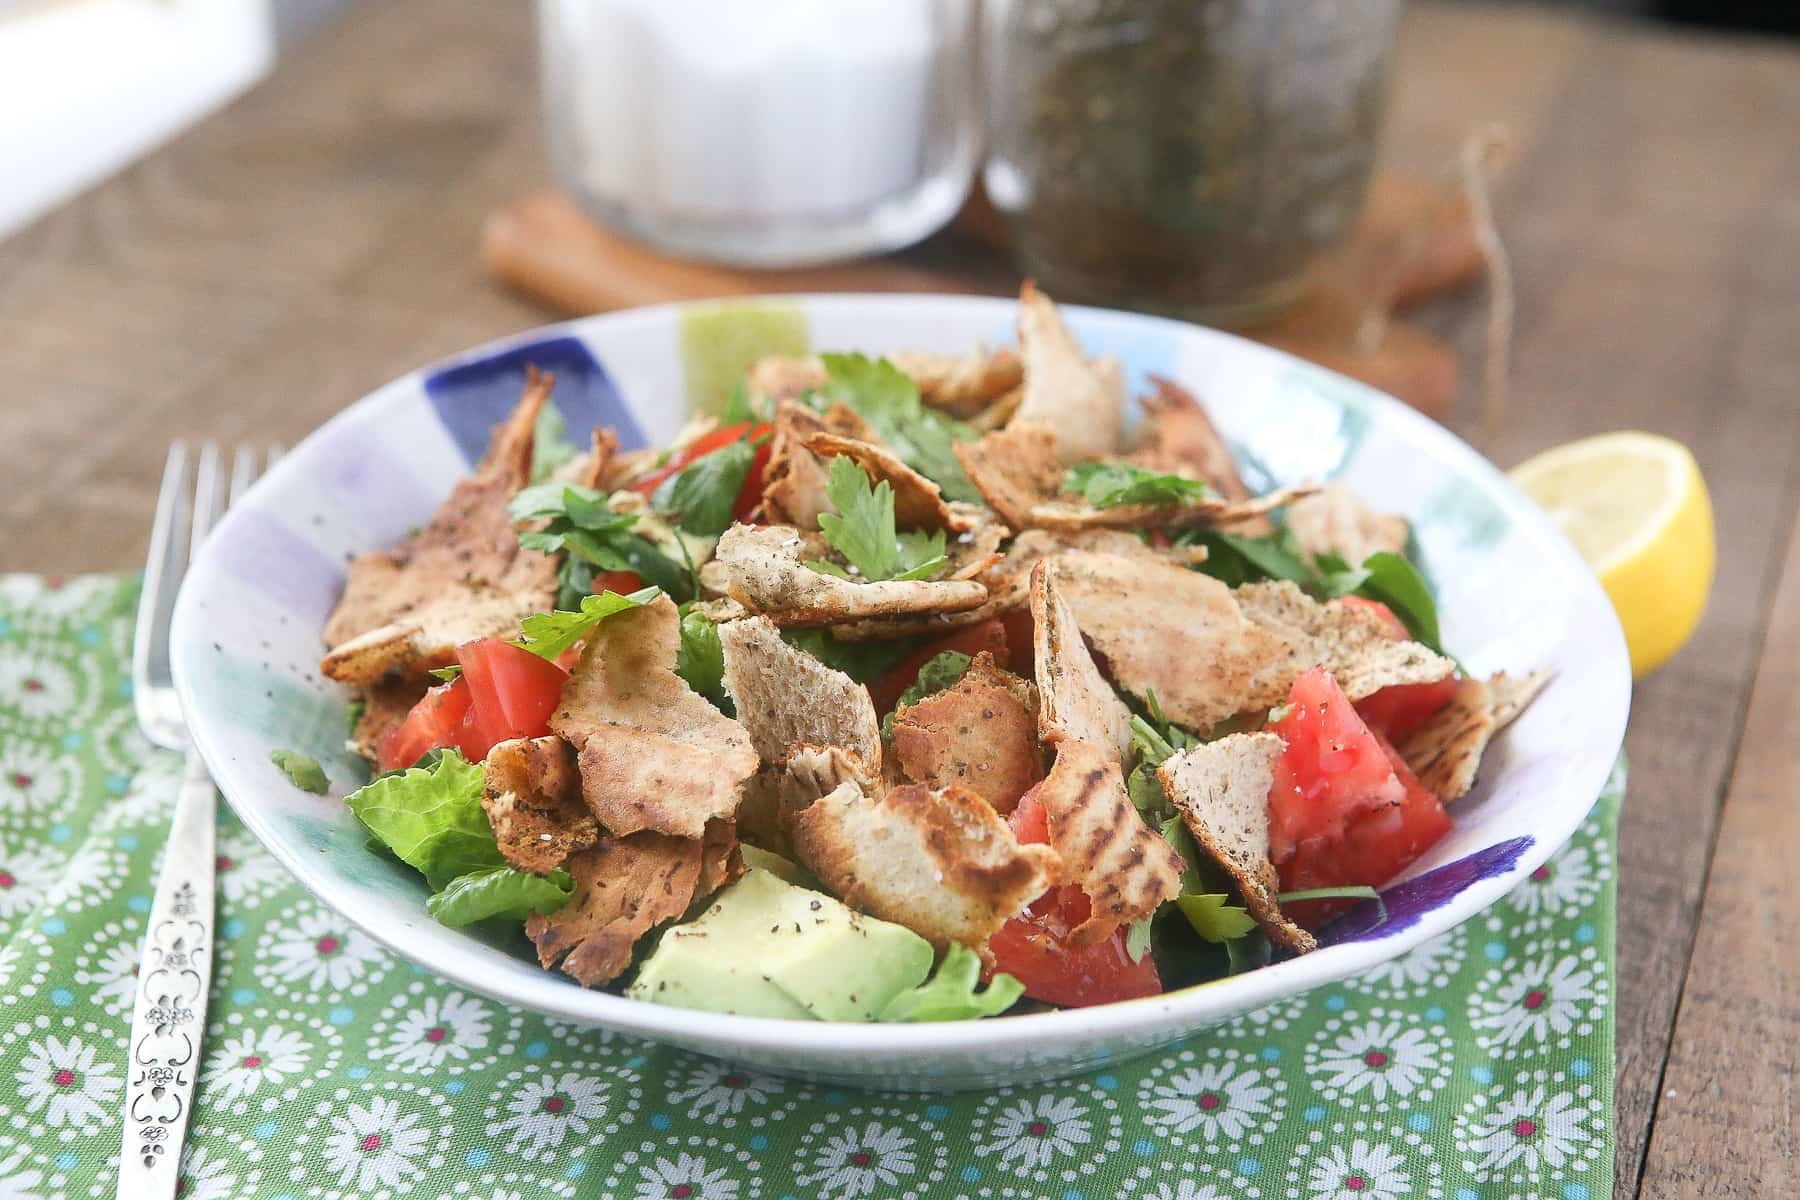 Fattoush - Lebanese Garden Salad with Toasted Pita Bread